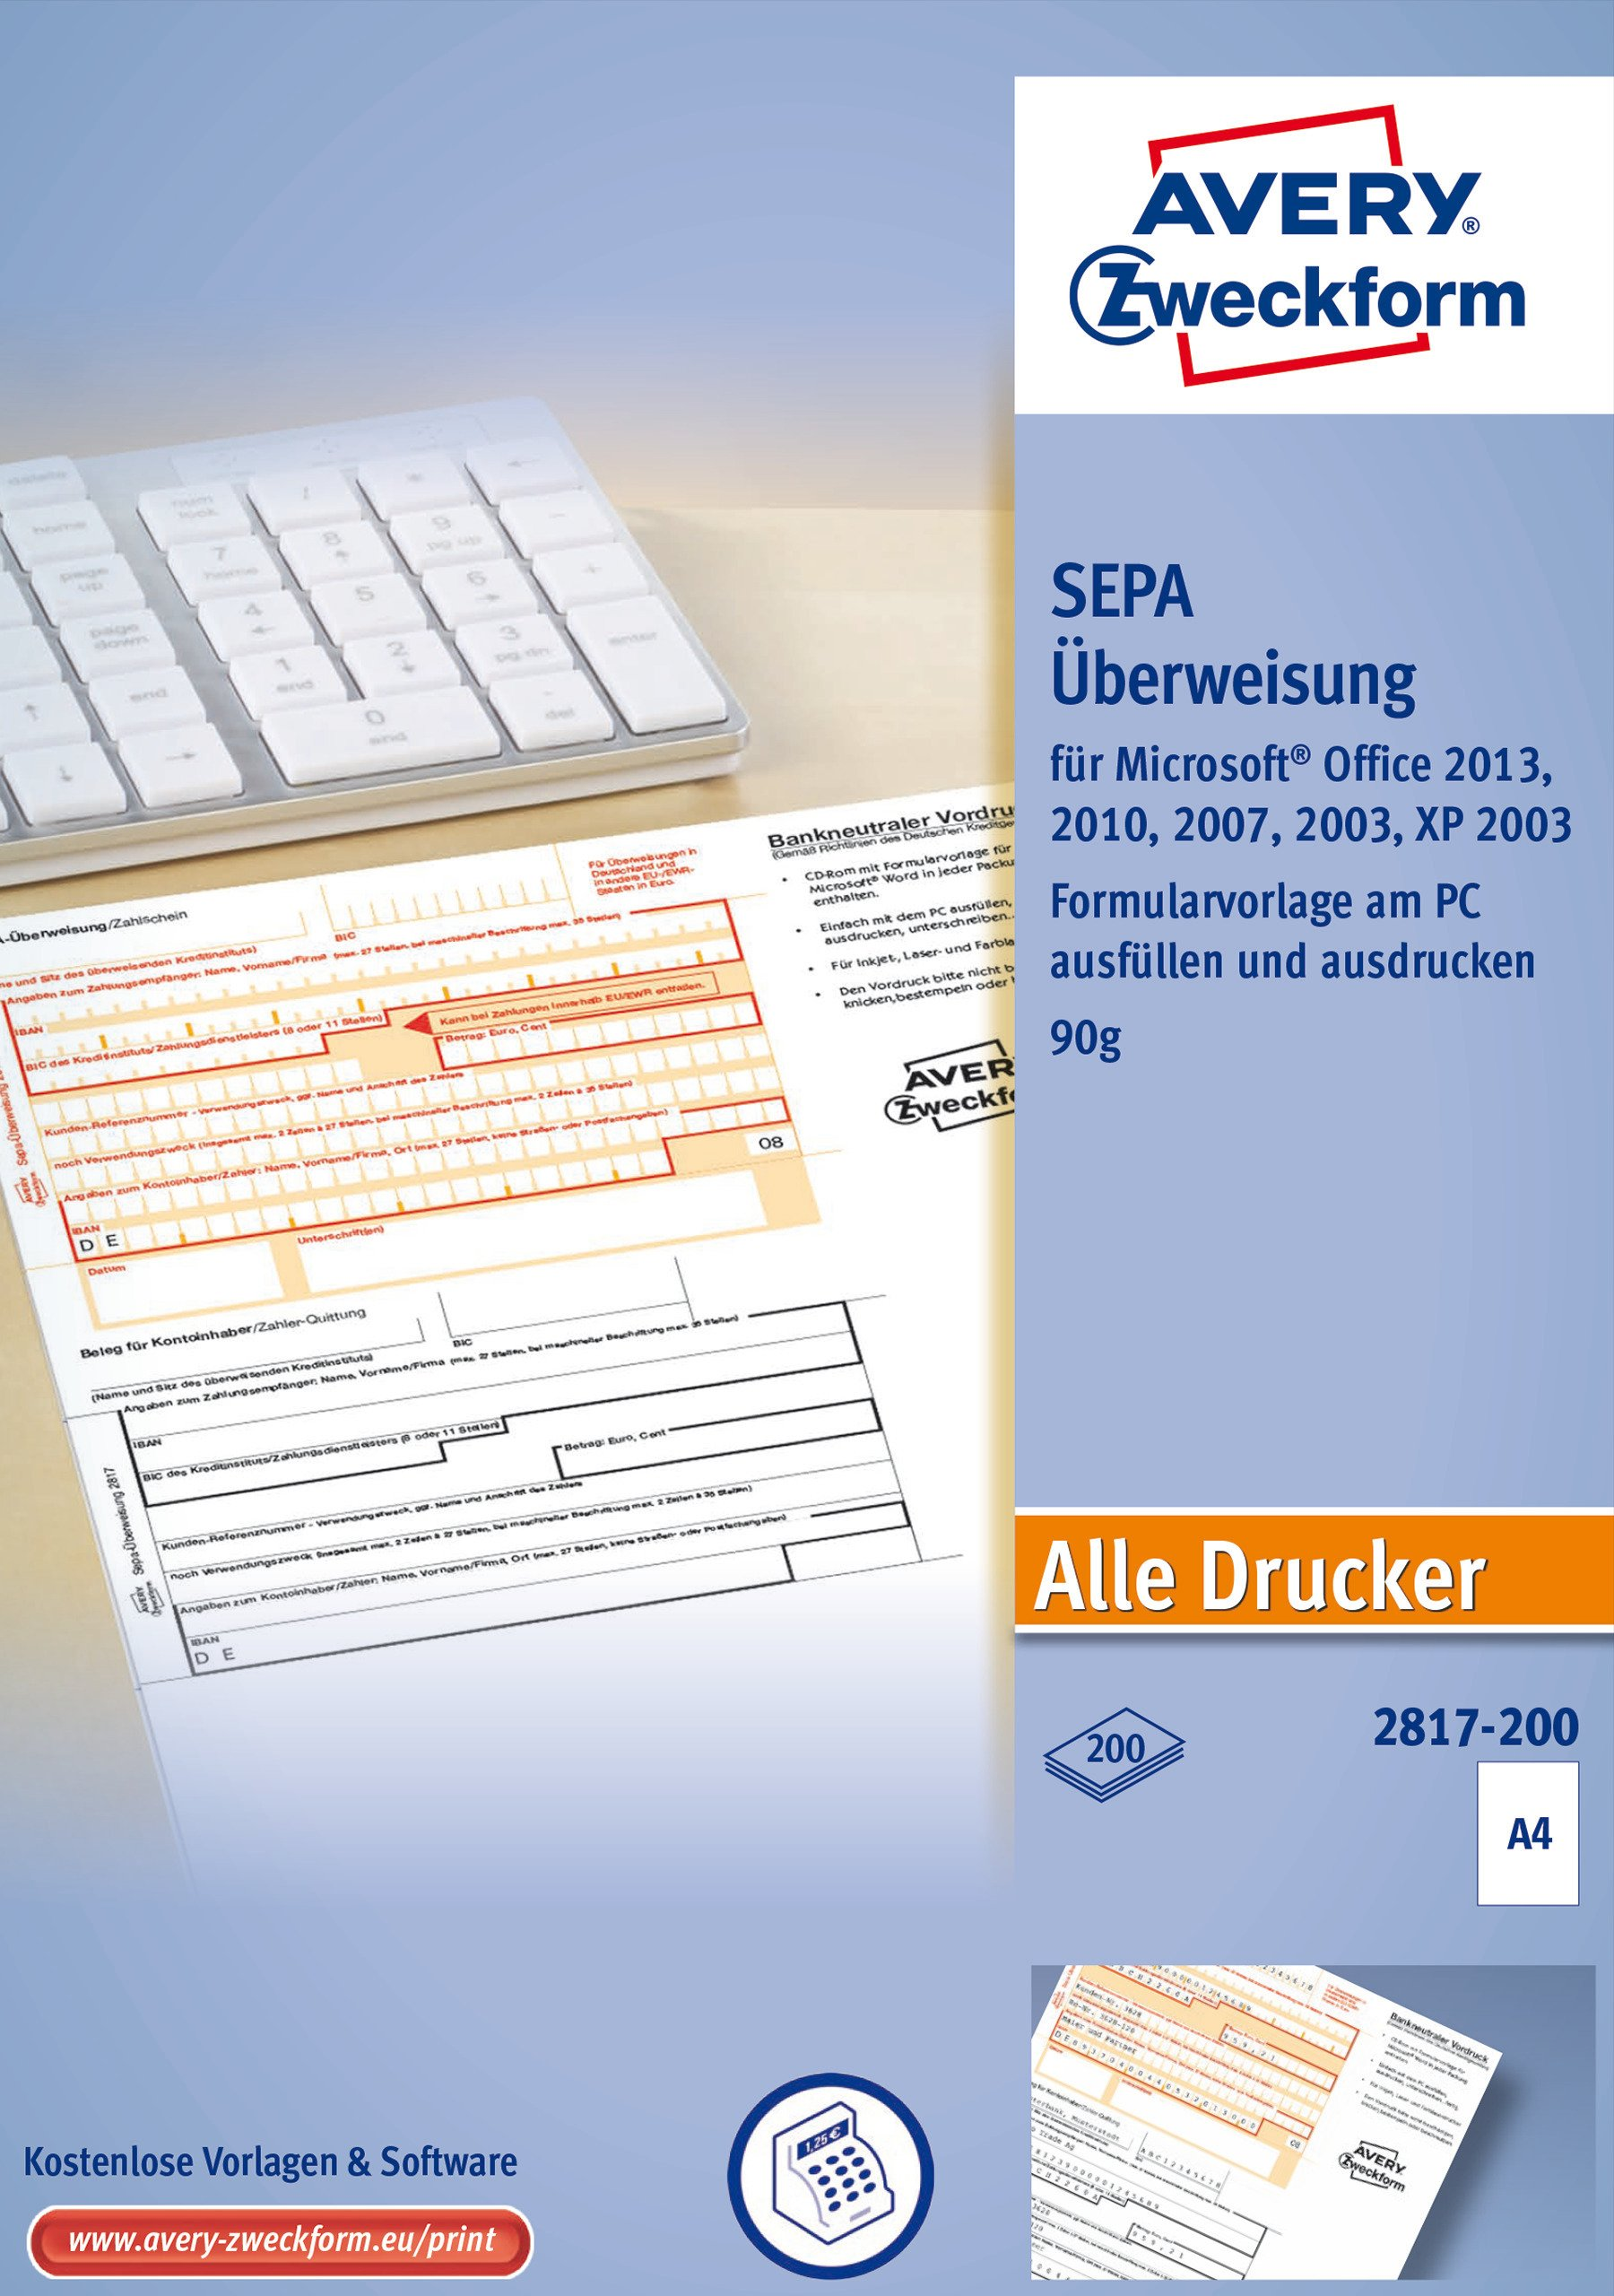 Avery Zweckform 2817Überweisung/Payment Slip PC Printer Form, 200Sheets of A4 by Avery Dennison